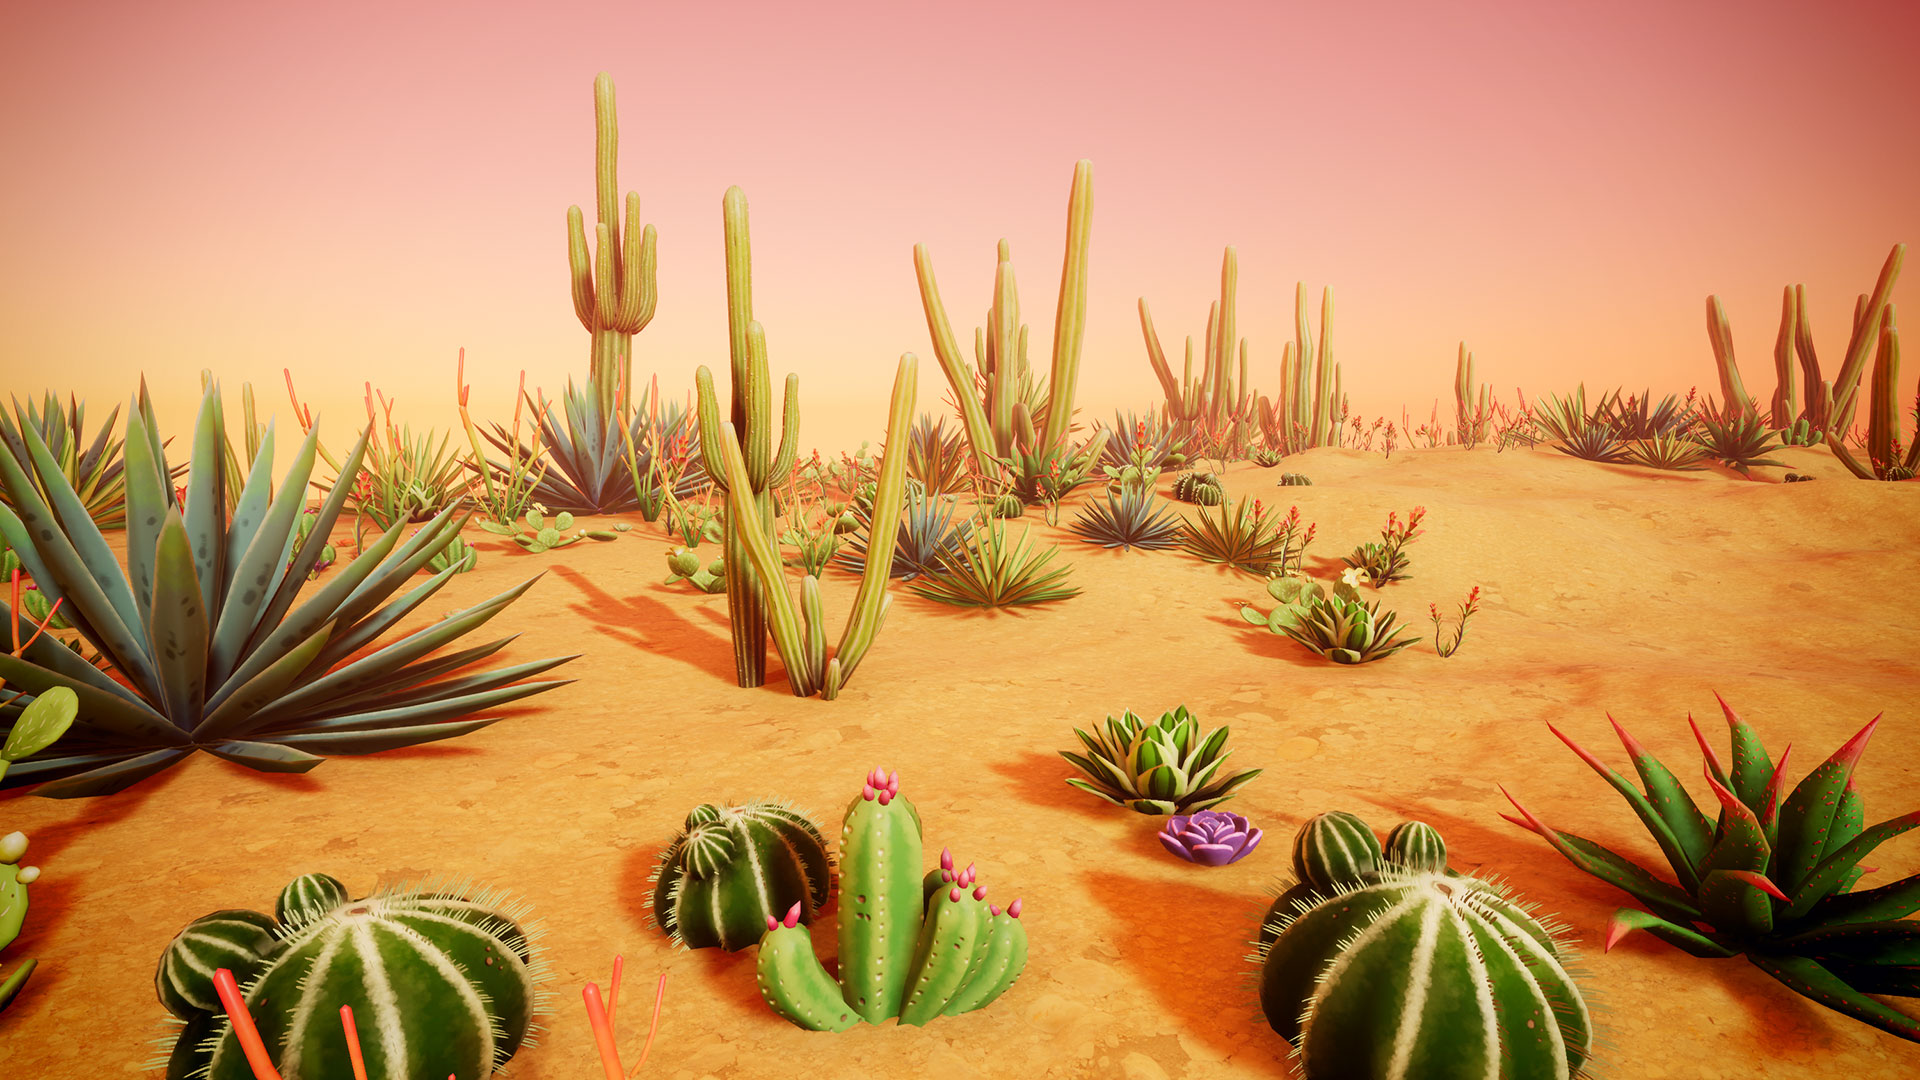 Stylized Desert Plants By Bad Rhino Games In Environments Ue4